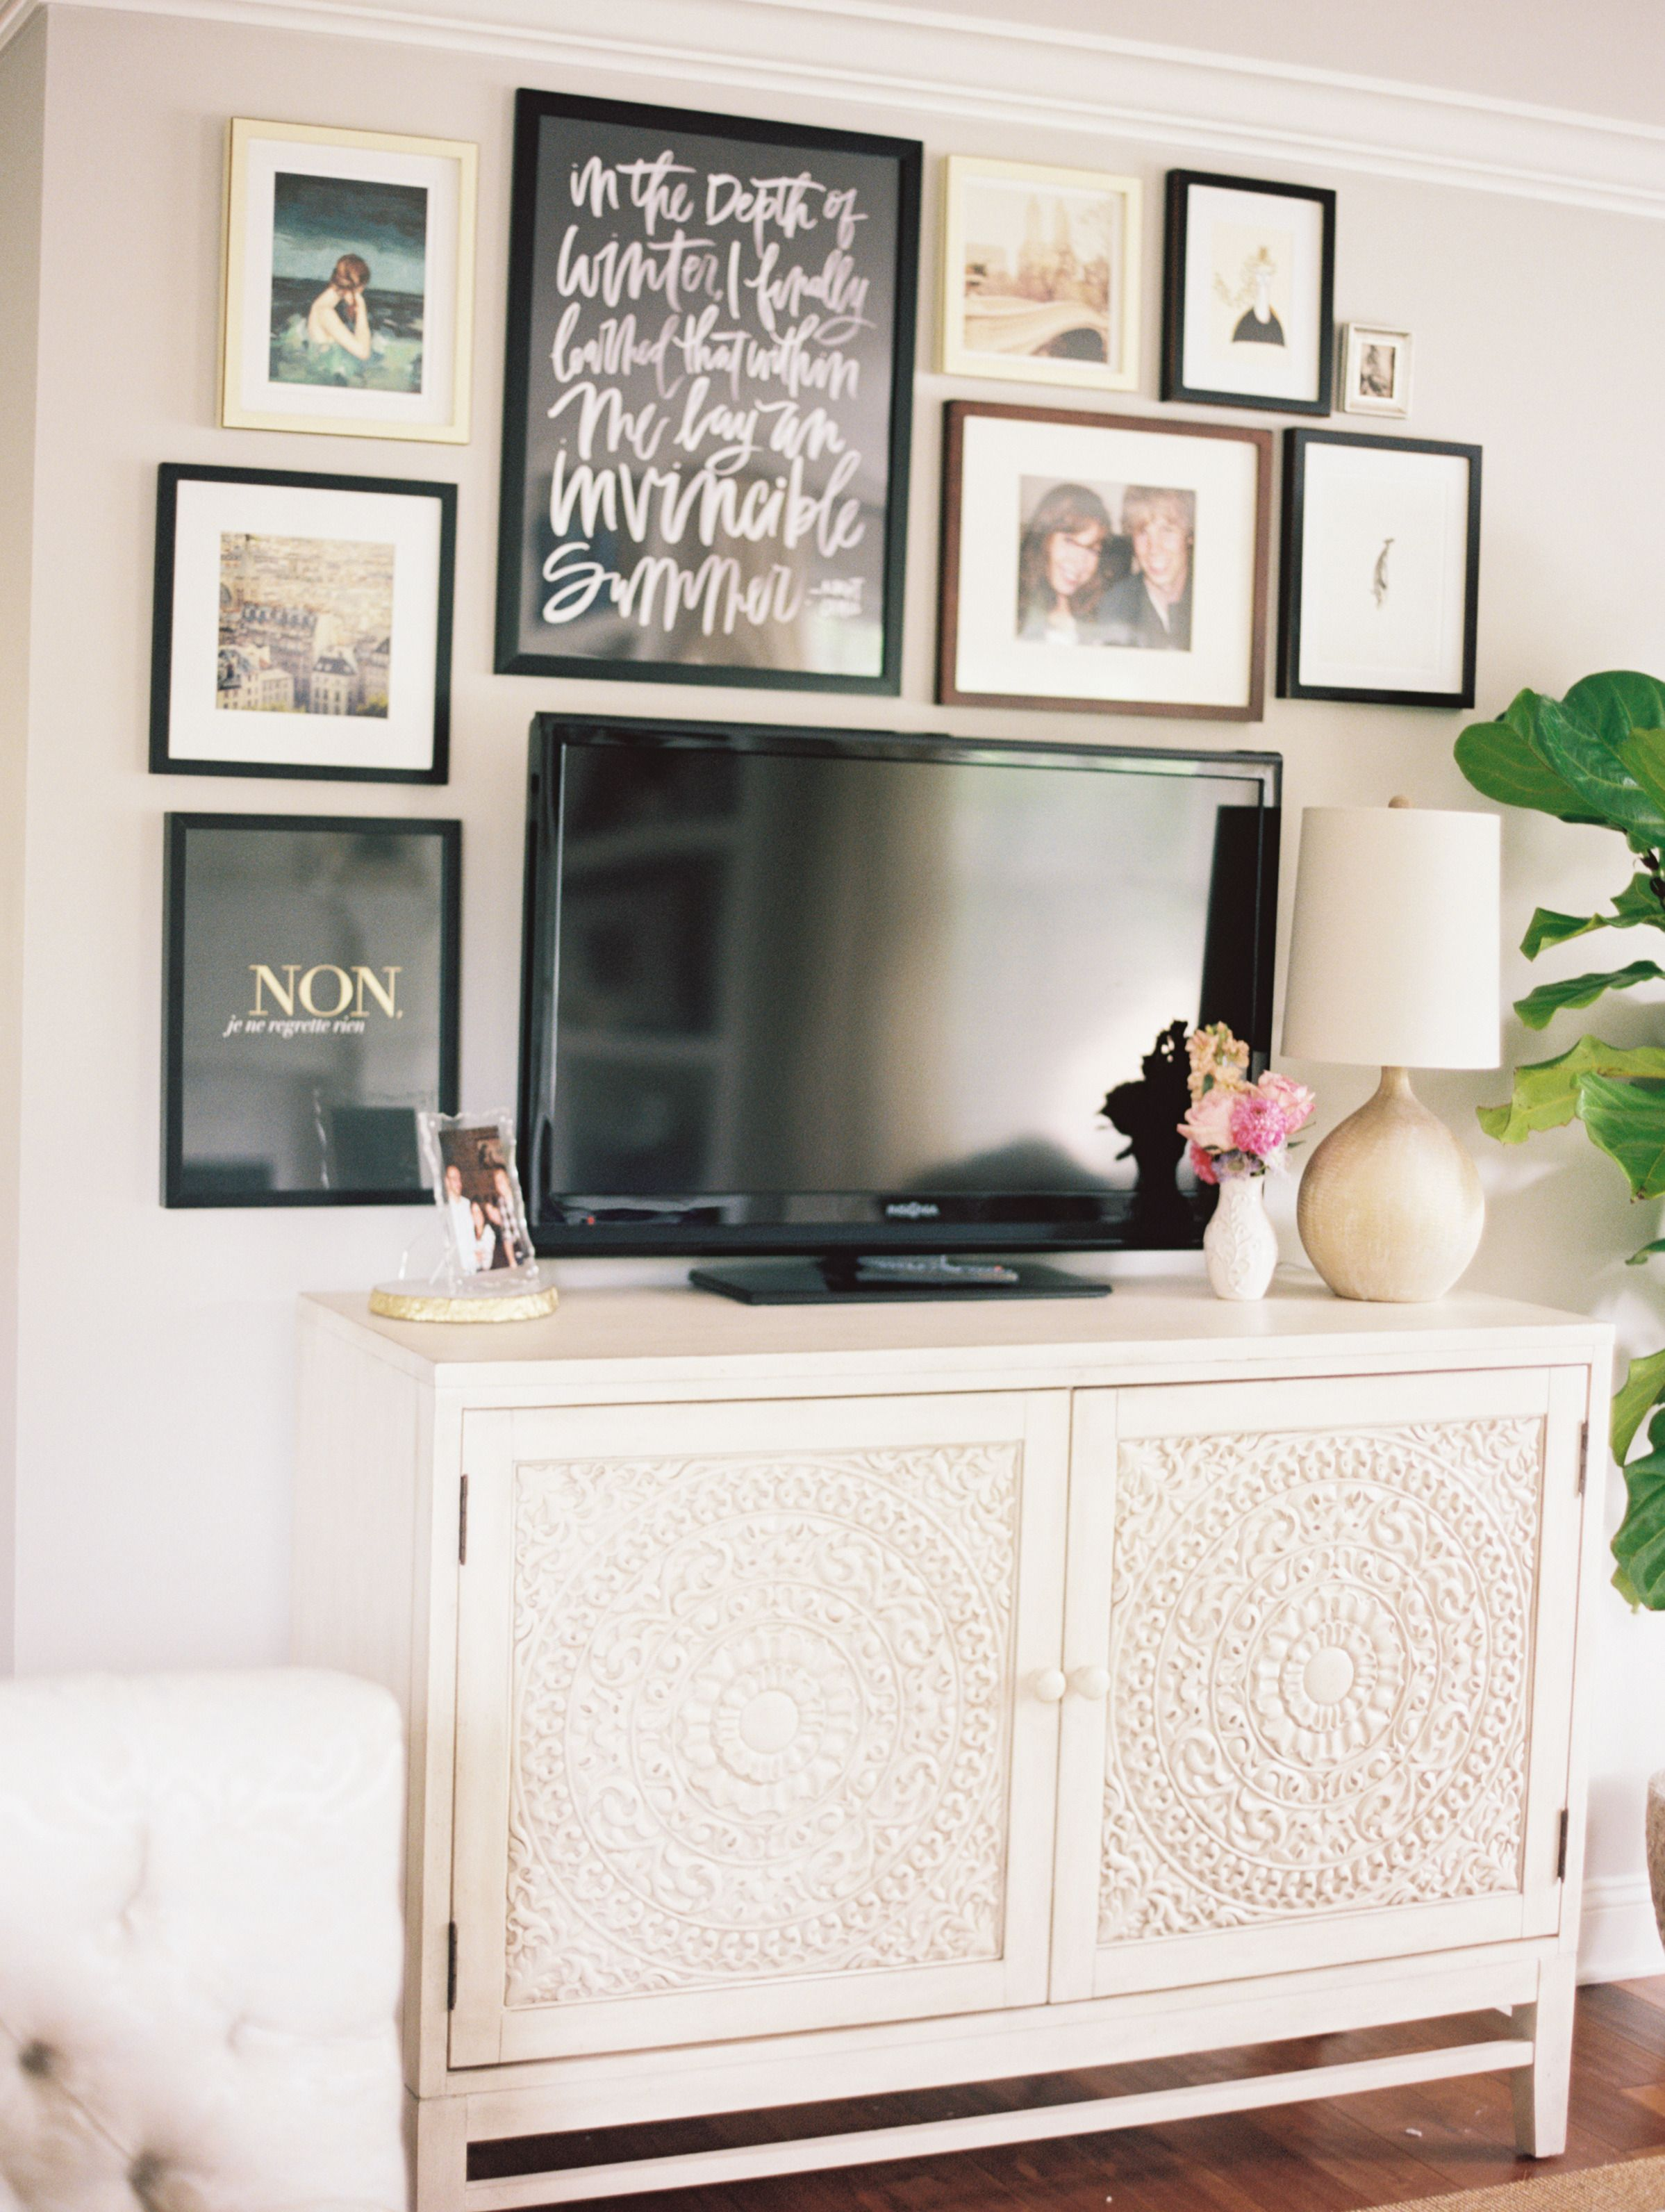 decorating apartment ideas best of modern decor the rental australia space awesome